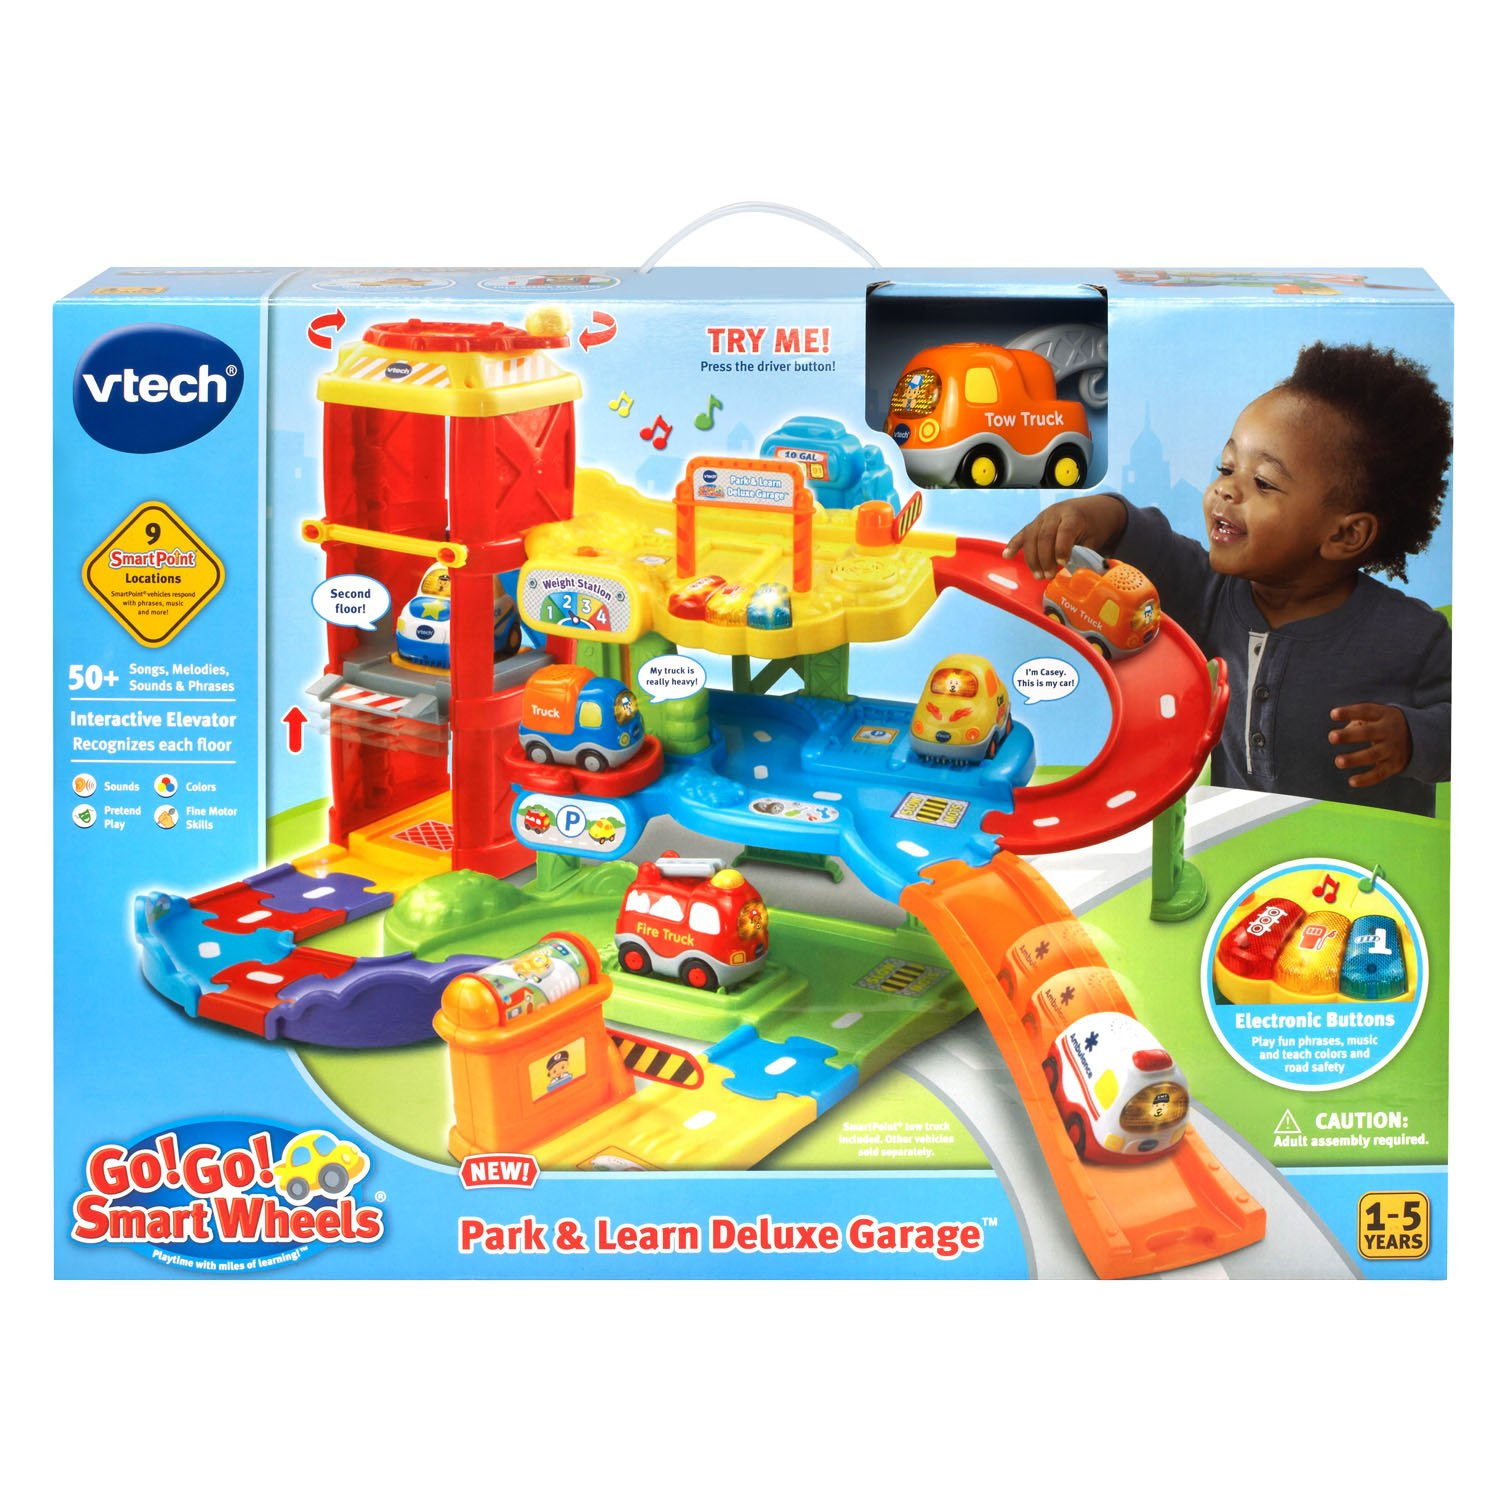 Galleon Vtech Go Go Smart Wheels Park And Learn Deluxe